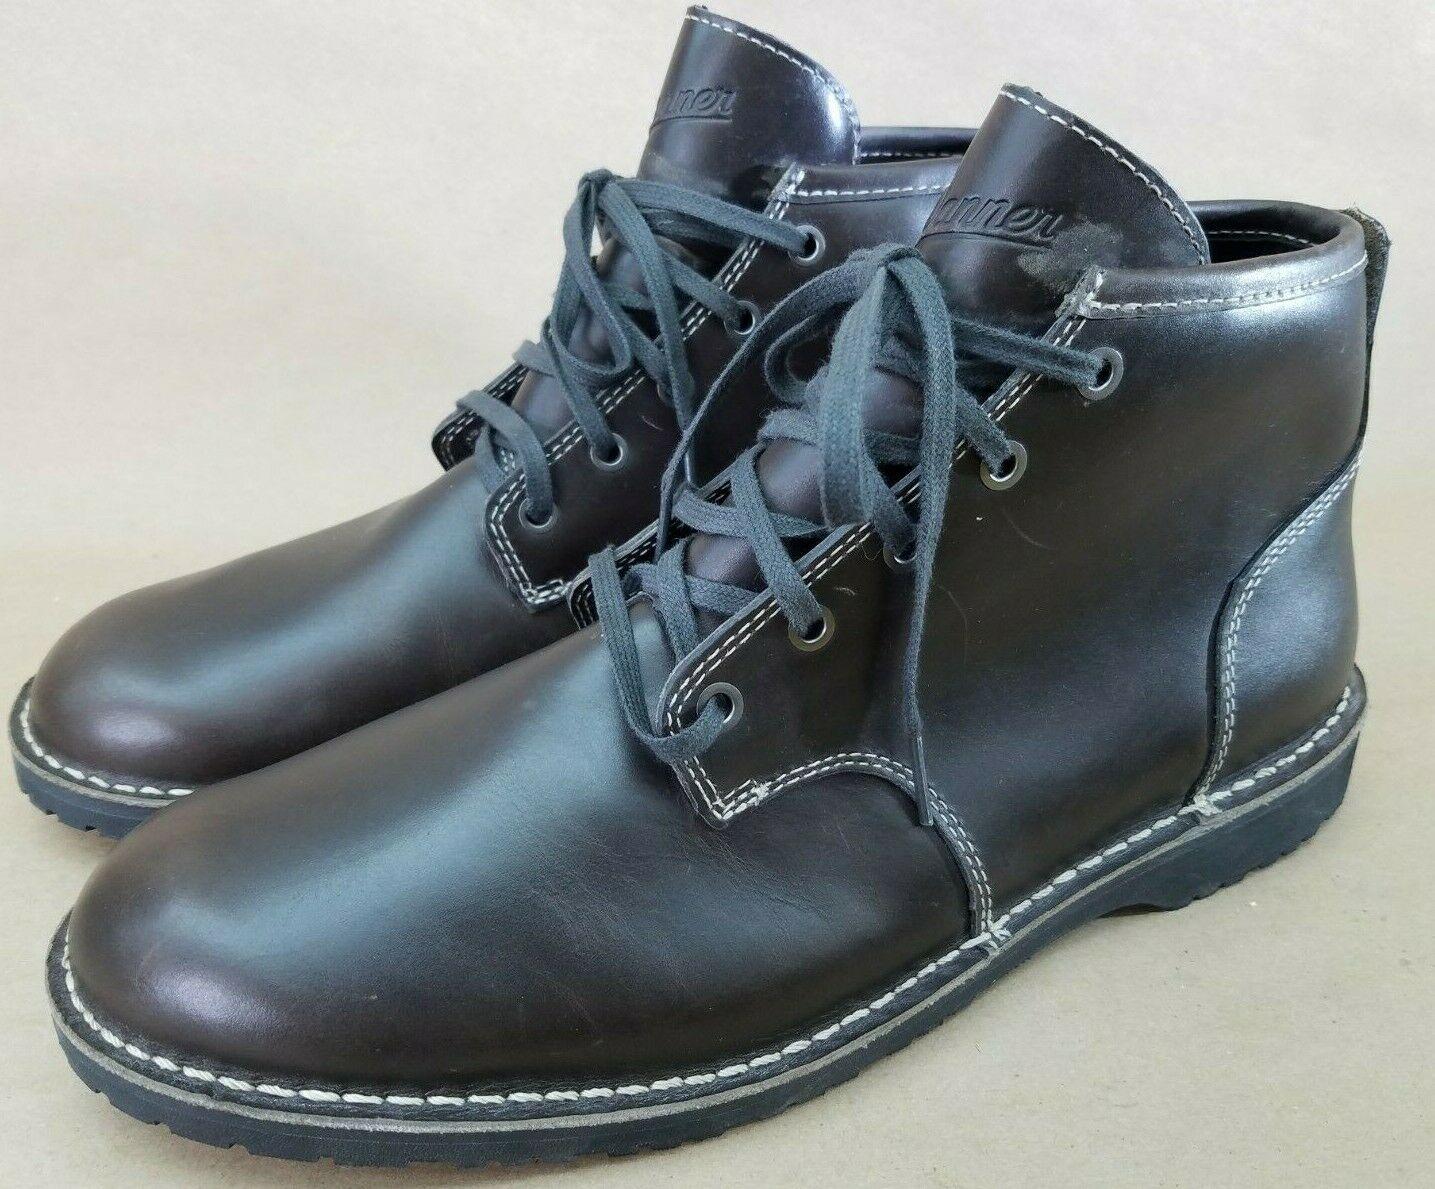 Danner Men's Wolf Creek Chukka Falcon Gray brown leather shoes boots Size 10.5 D